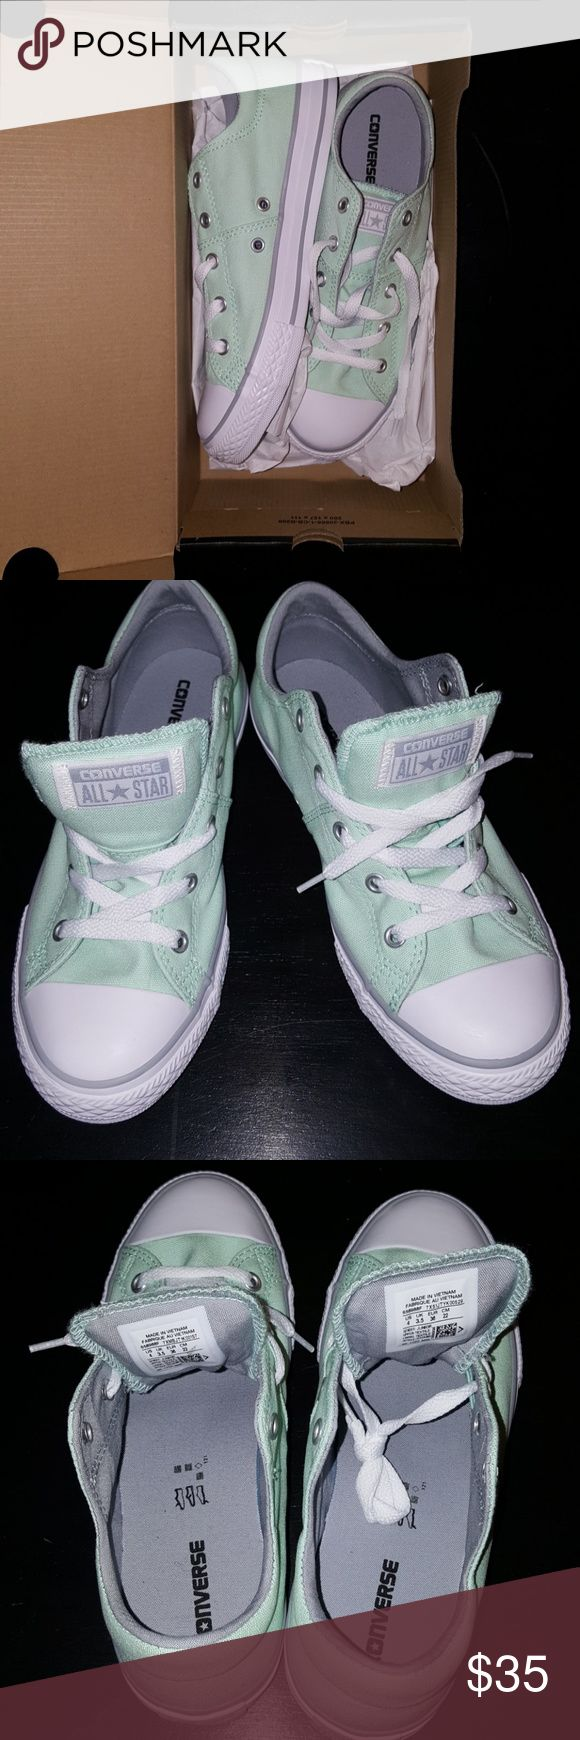 NWT Kids mint converse chuck Taylor low top 4 Kids mint green converse chuck Taylor low top size 4 Converse Shoes Sneakers